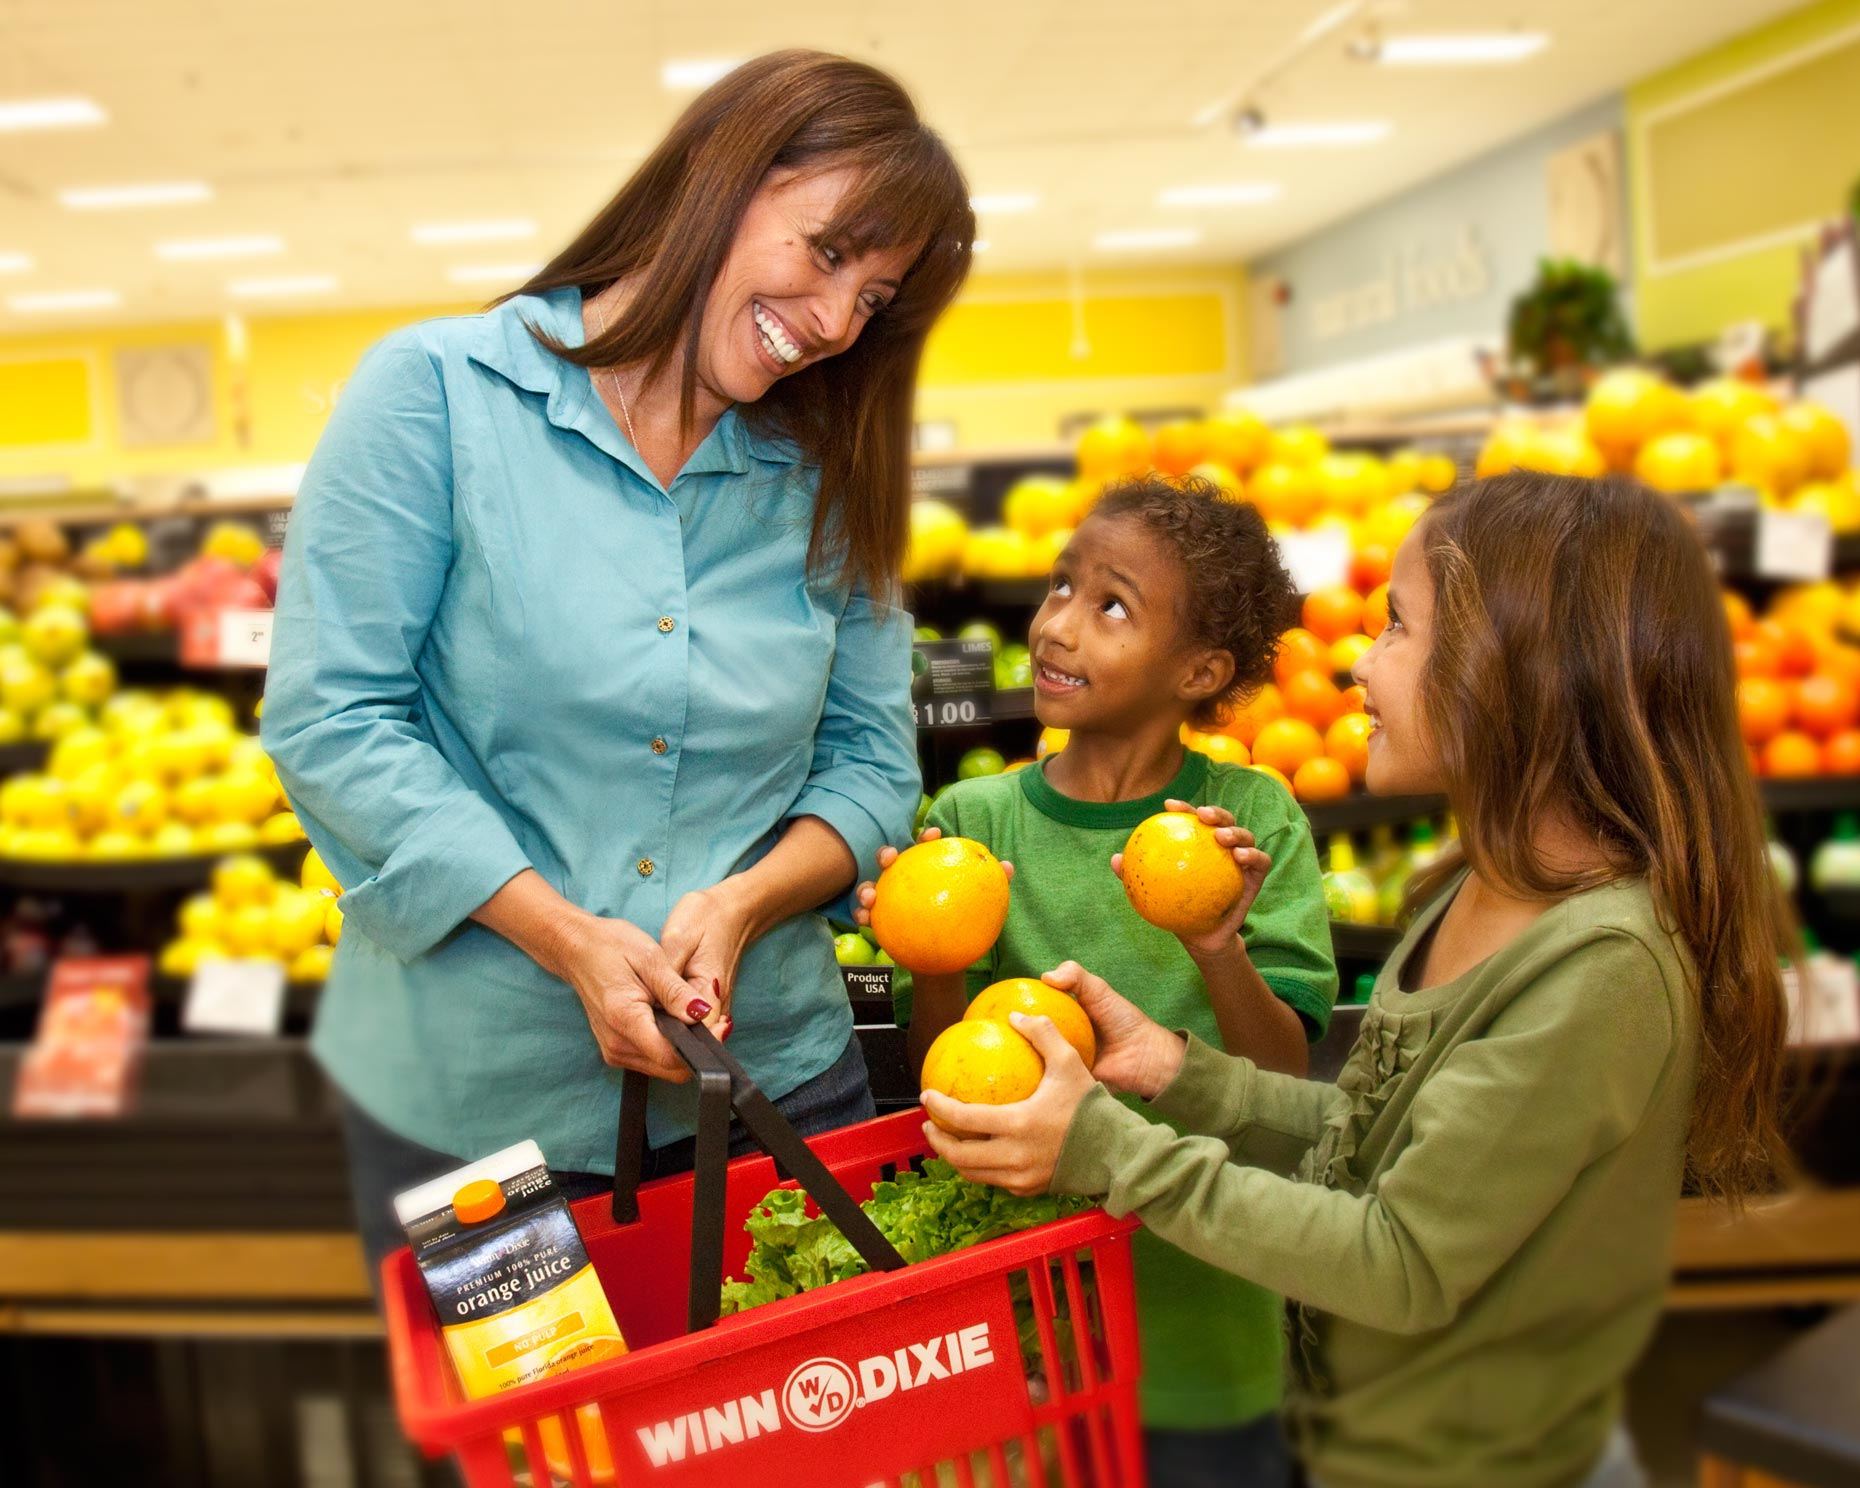 Lifestyle Photography | Mom & Kids Shopping at Grocery Store